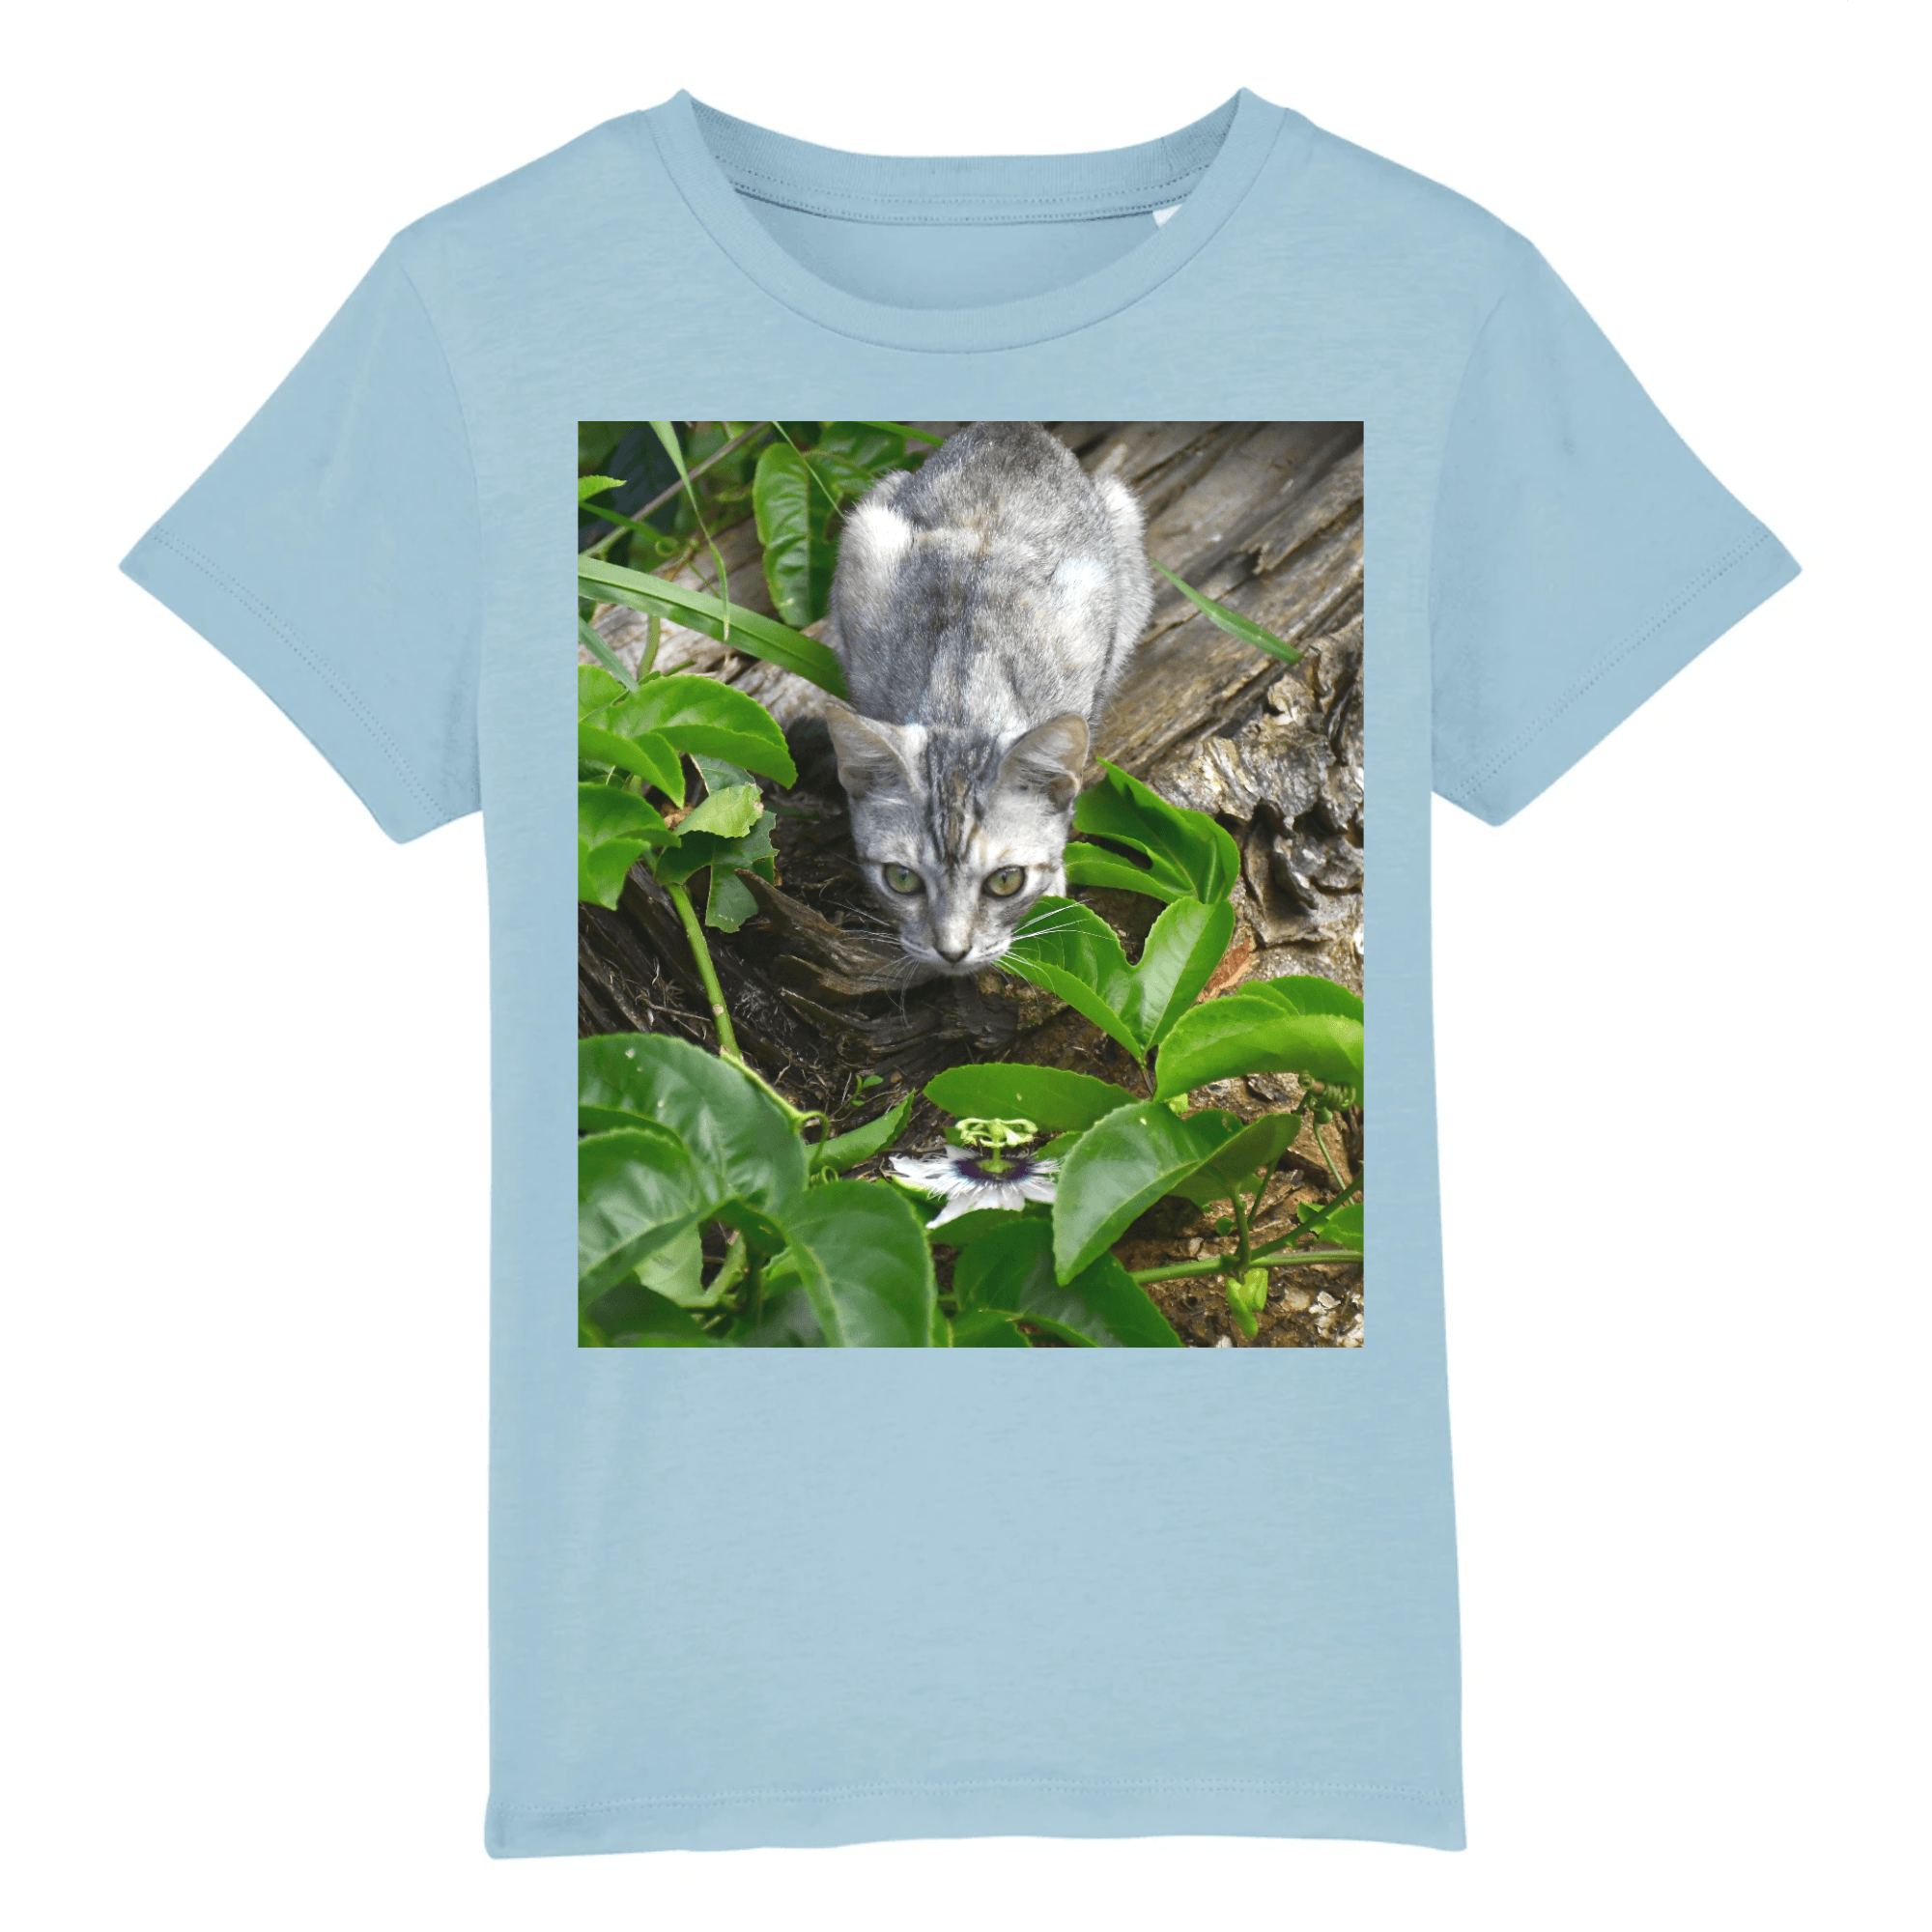 Affordable $19 - CHILD T-SHIRT - 100 % ORGANIC COTTON - Natural Images - Our home cat Mimi watchful in front of Passionflower- PR - Yunque Store